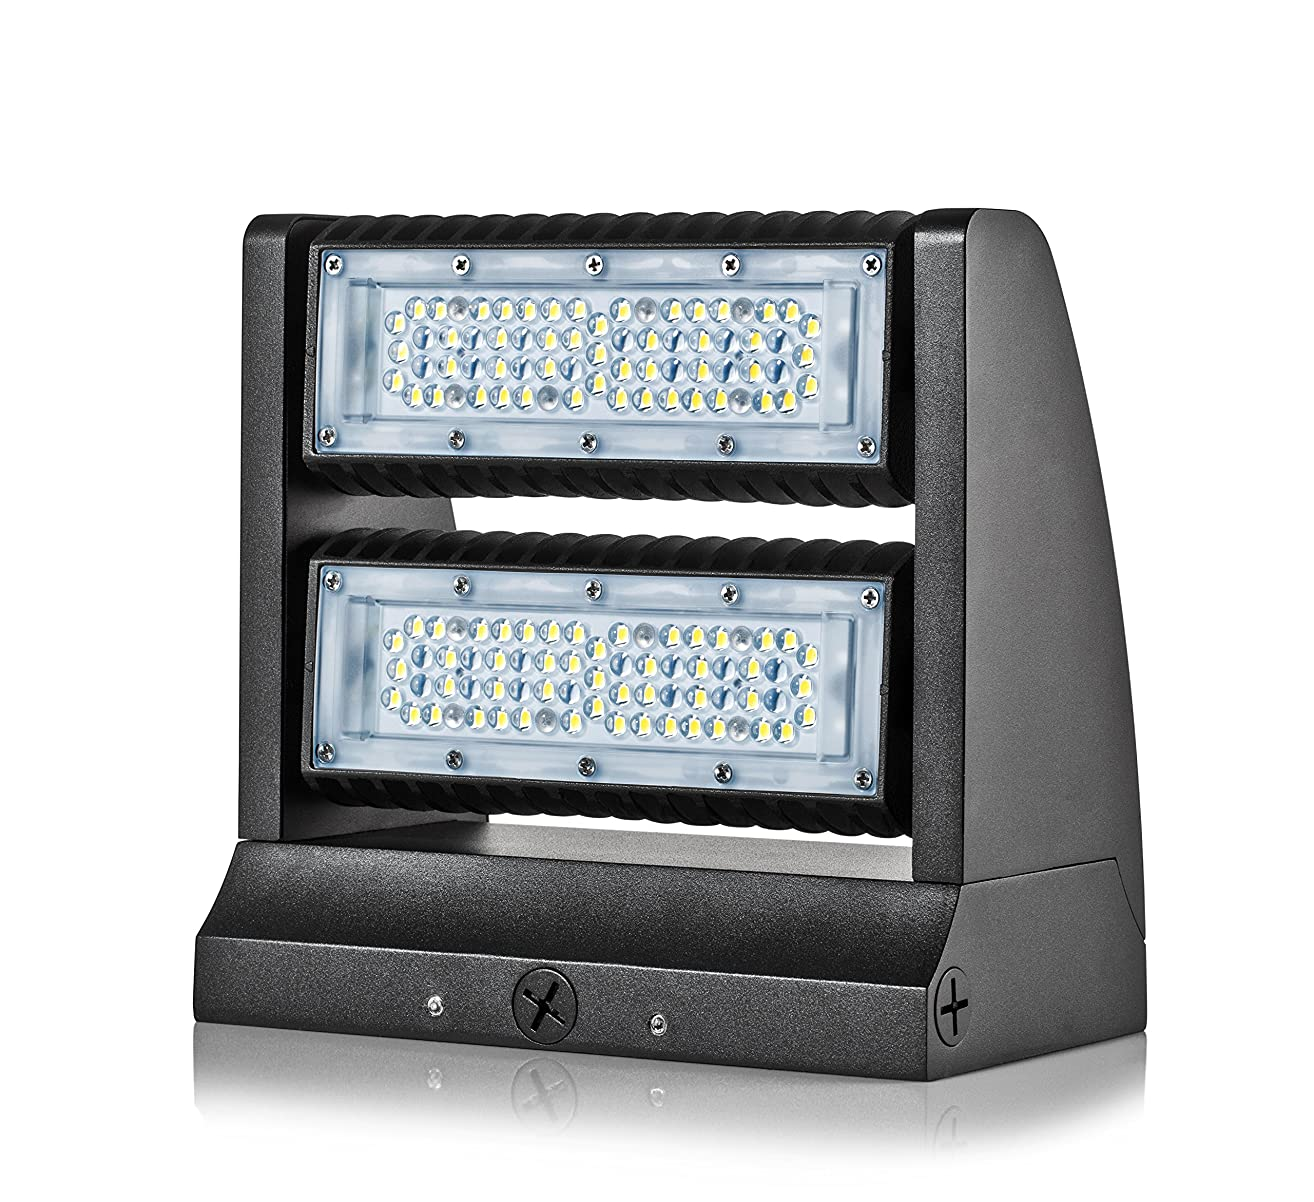 Hyperikon LED Wall Pack Rotatable 80W, 5000K (Crystal White Glow), 10600 lumens, Mounted Base IP65 Outdoor Wall Pack, Waterproof/Dustproof Wall Light - Great for Area Light, Warehouse, Industrial Use